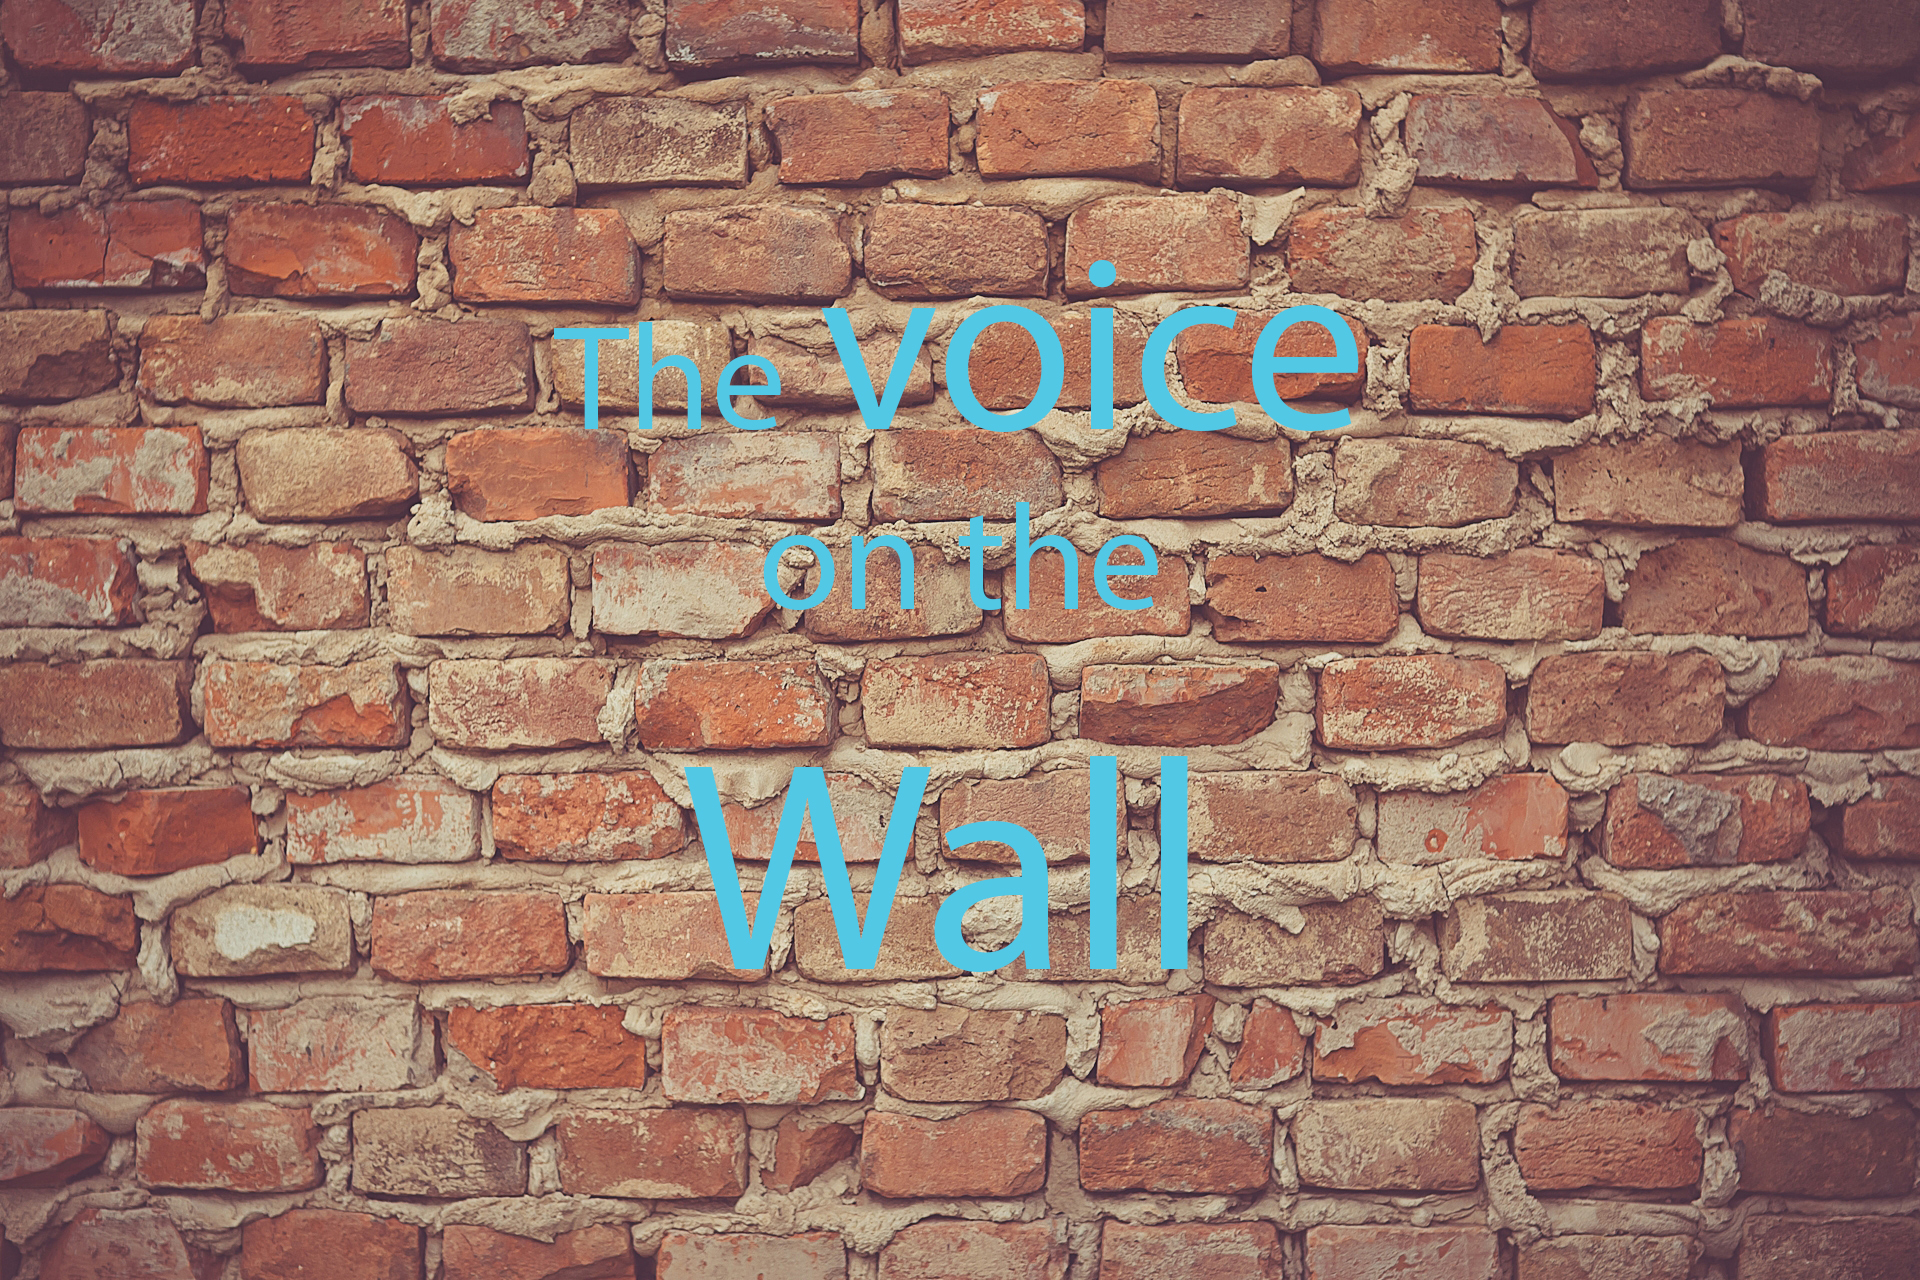 The Voice On The Wall| Leher NGO in India | Child Rights Organization